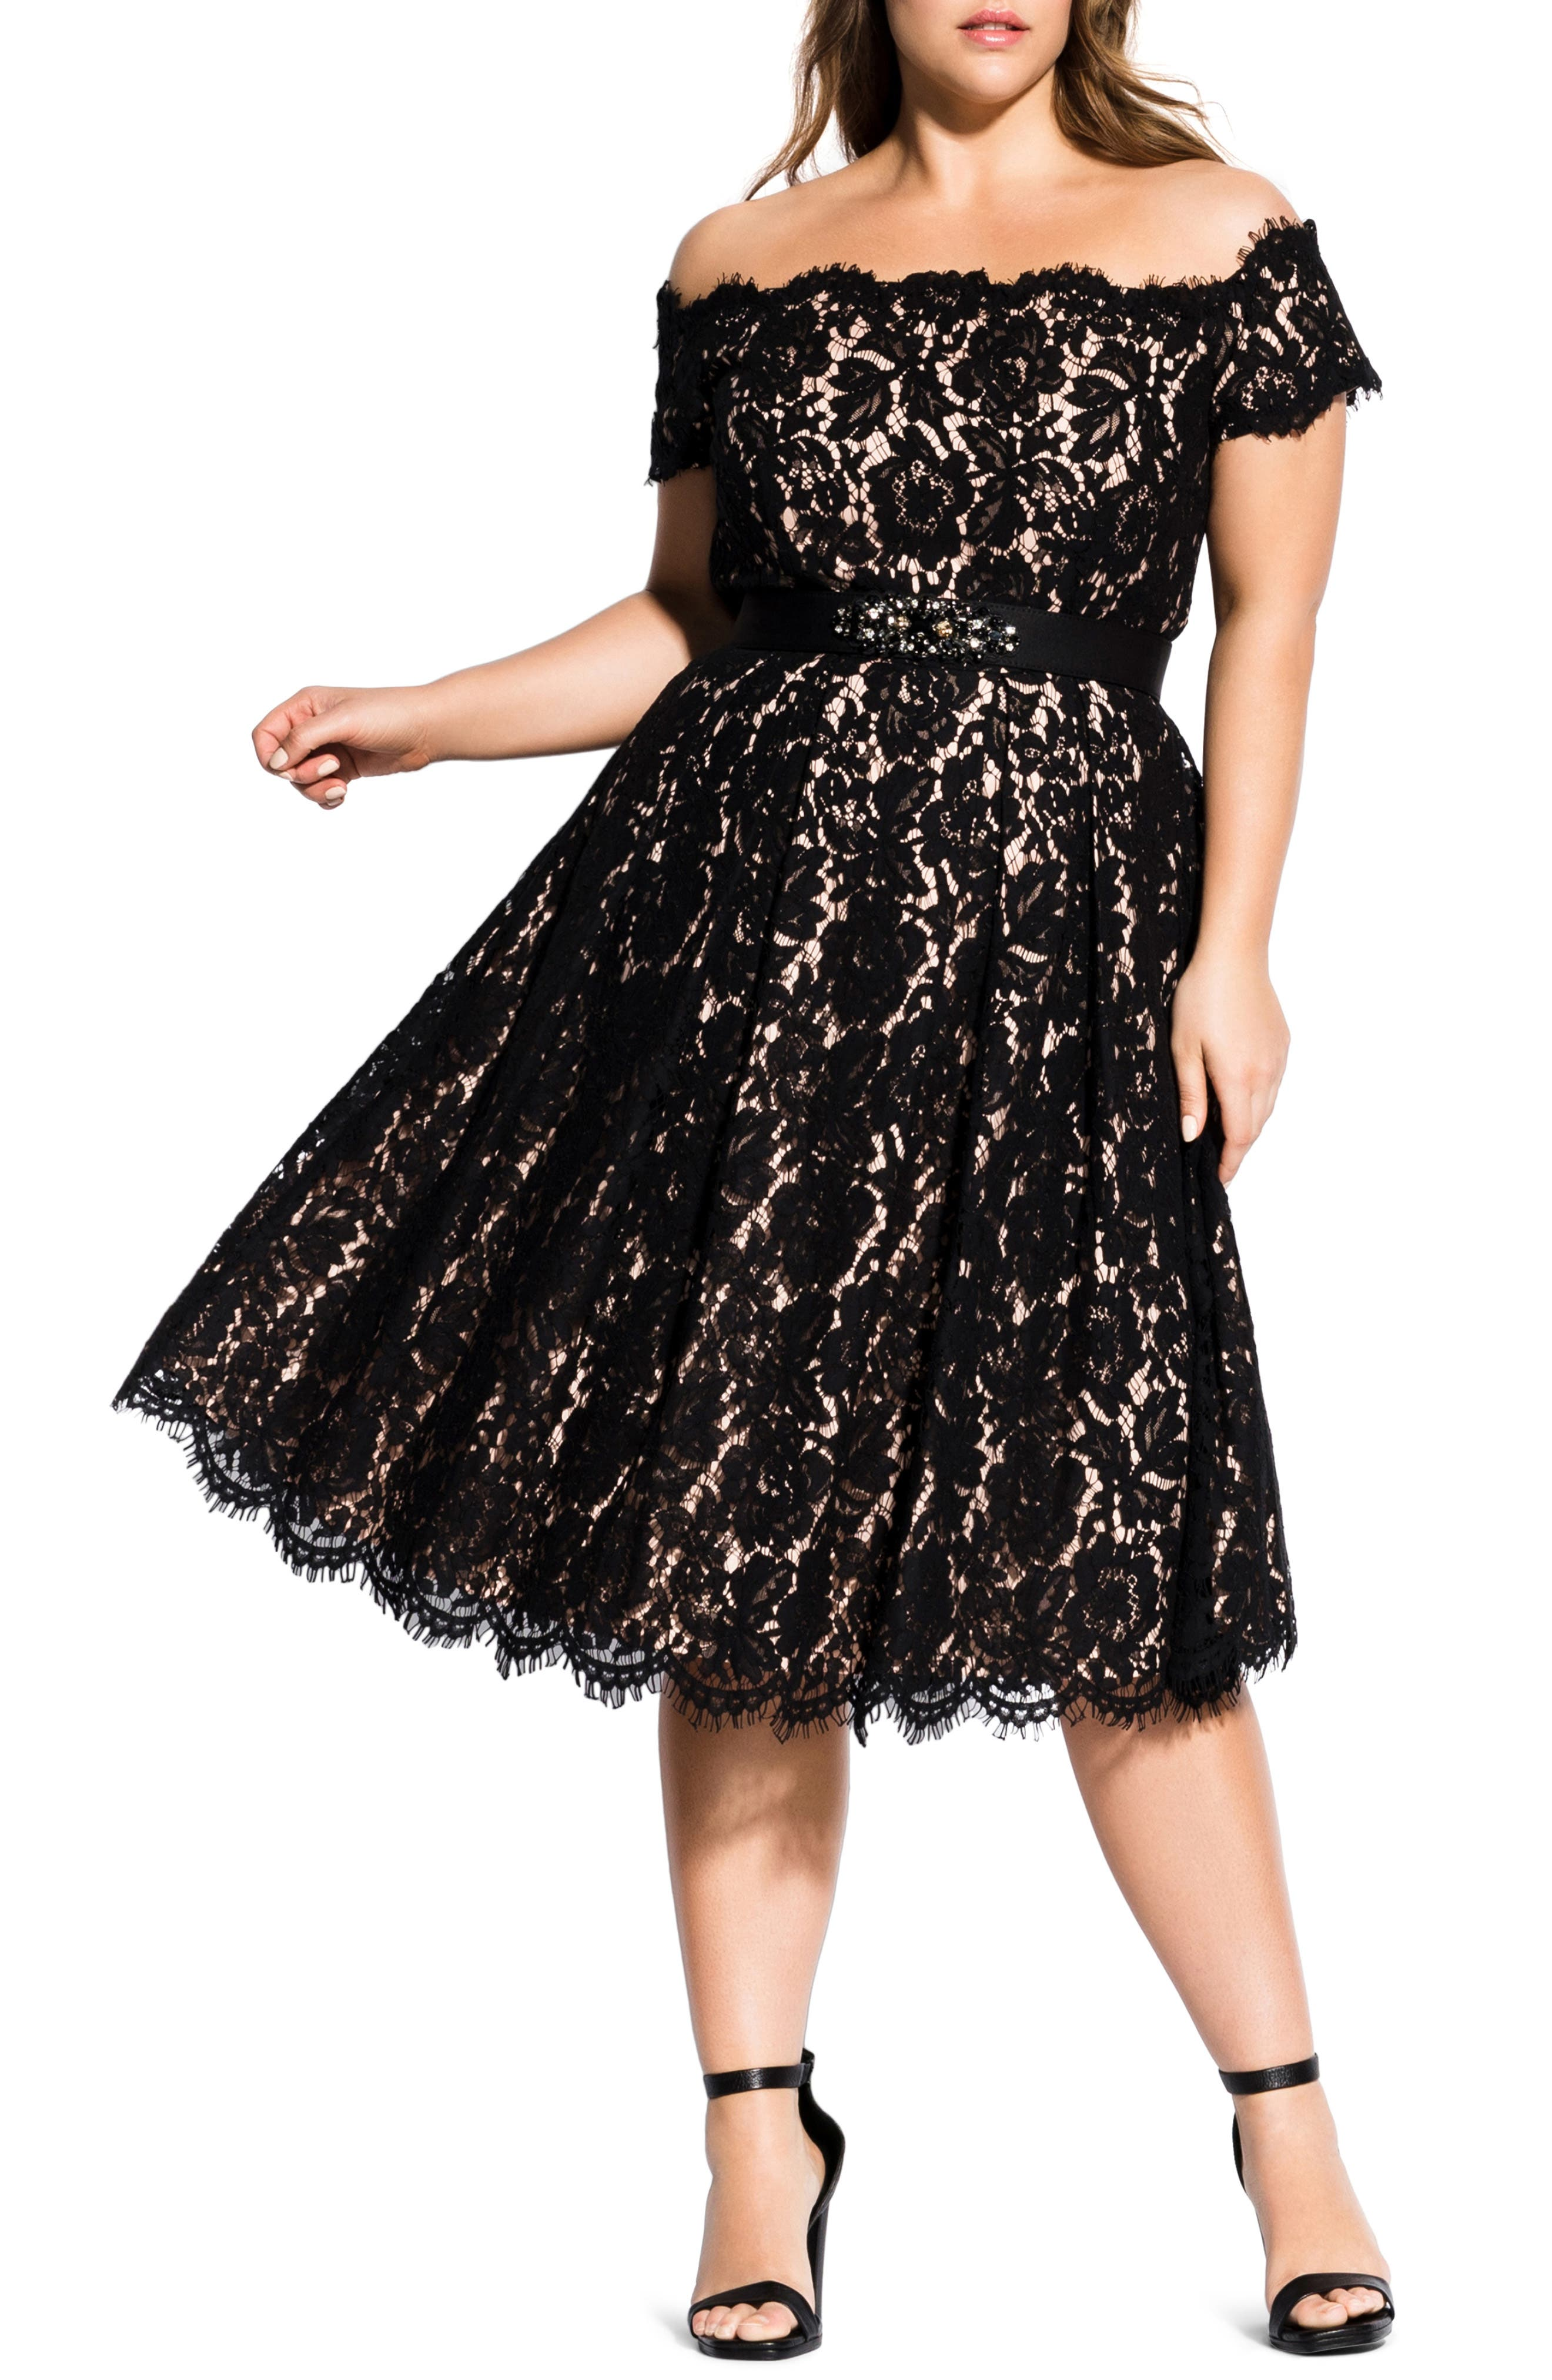 Vintage Evening Dresses and Formal Evening Gowns Plus Size Womens City Chic Off The Shoulder Lace Dreams Midi Dress $169.00 AT vintagedancer.com